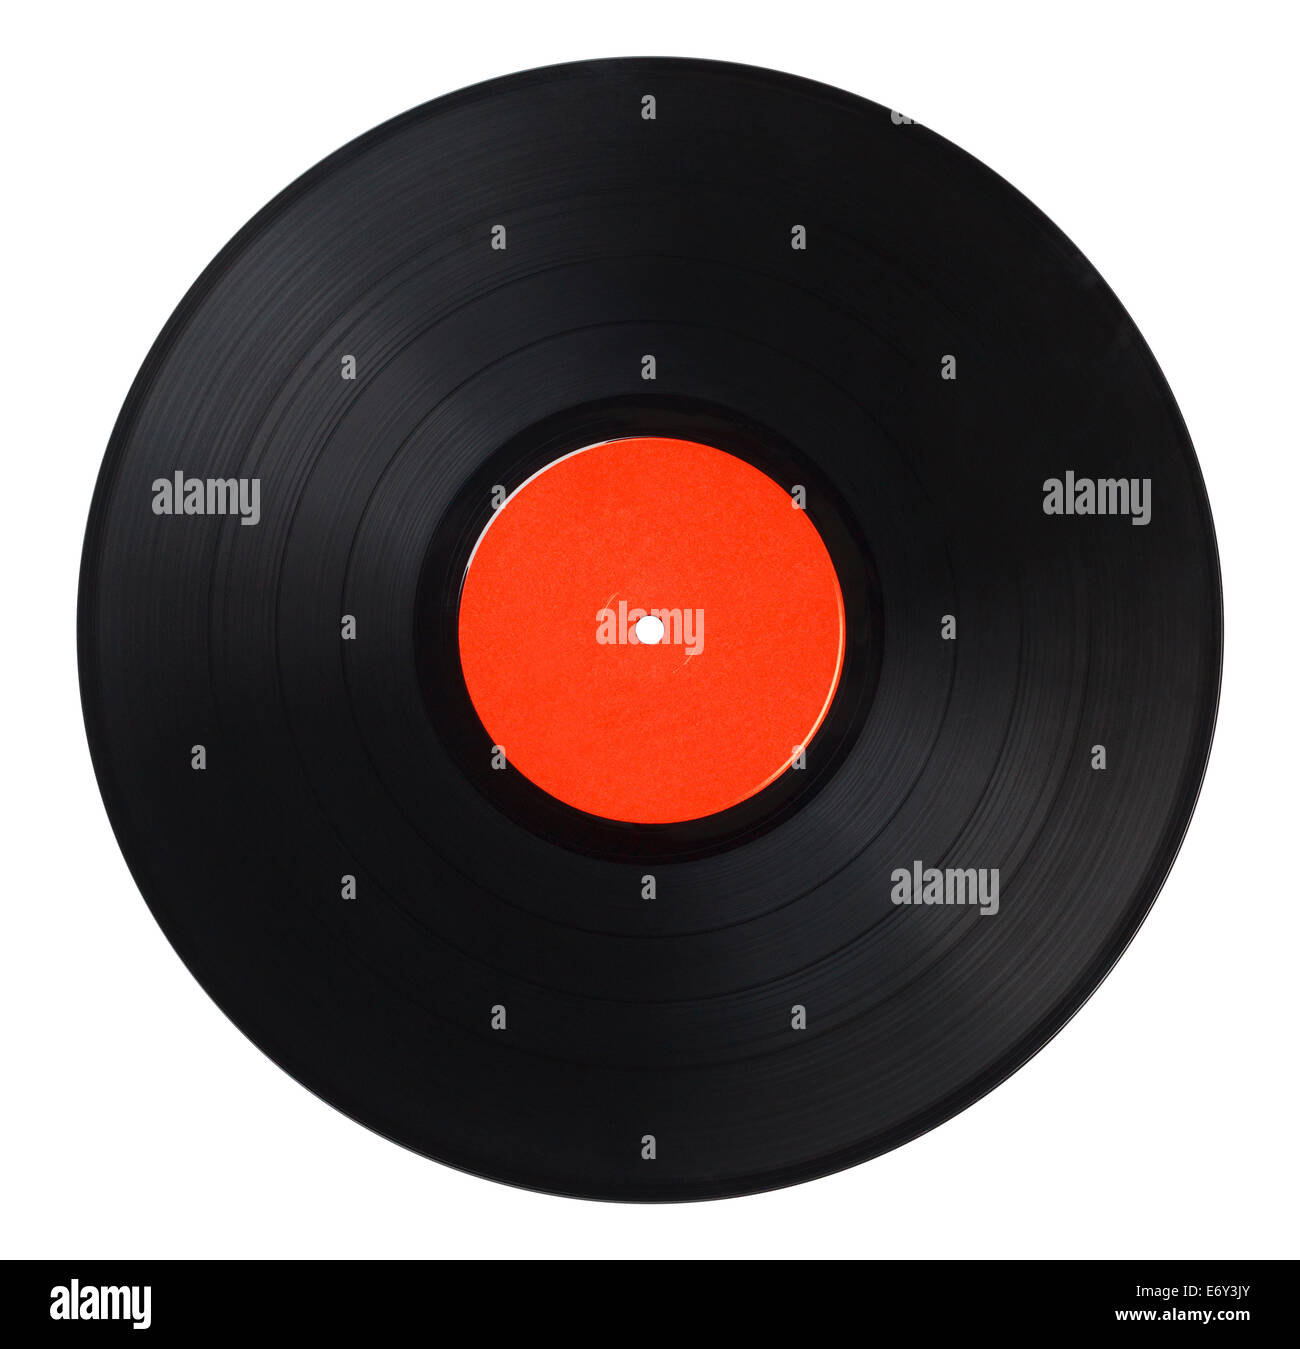 Black Music Record With Red Label Isolated on White Background. - Stock Image